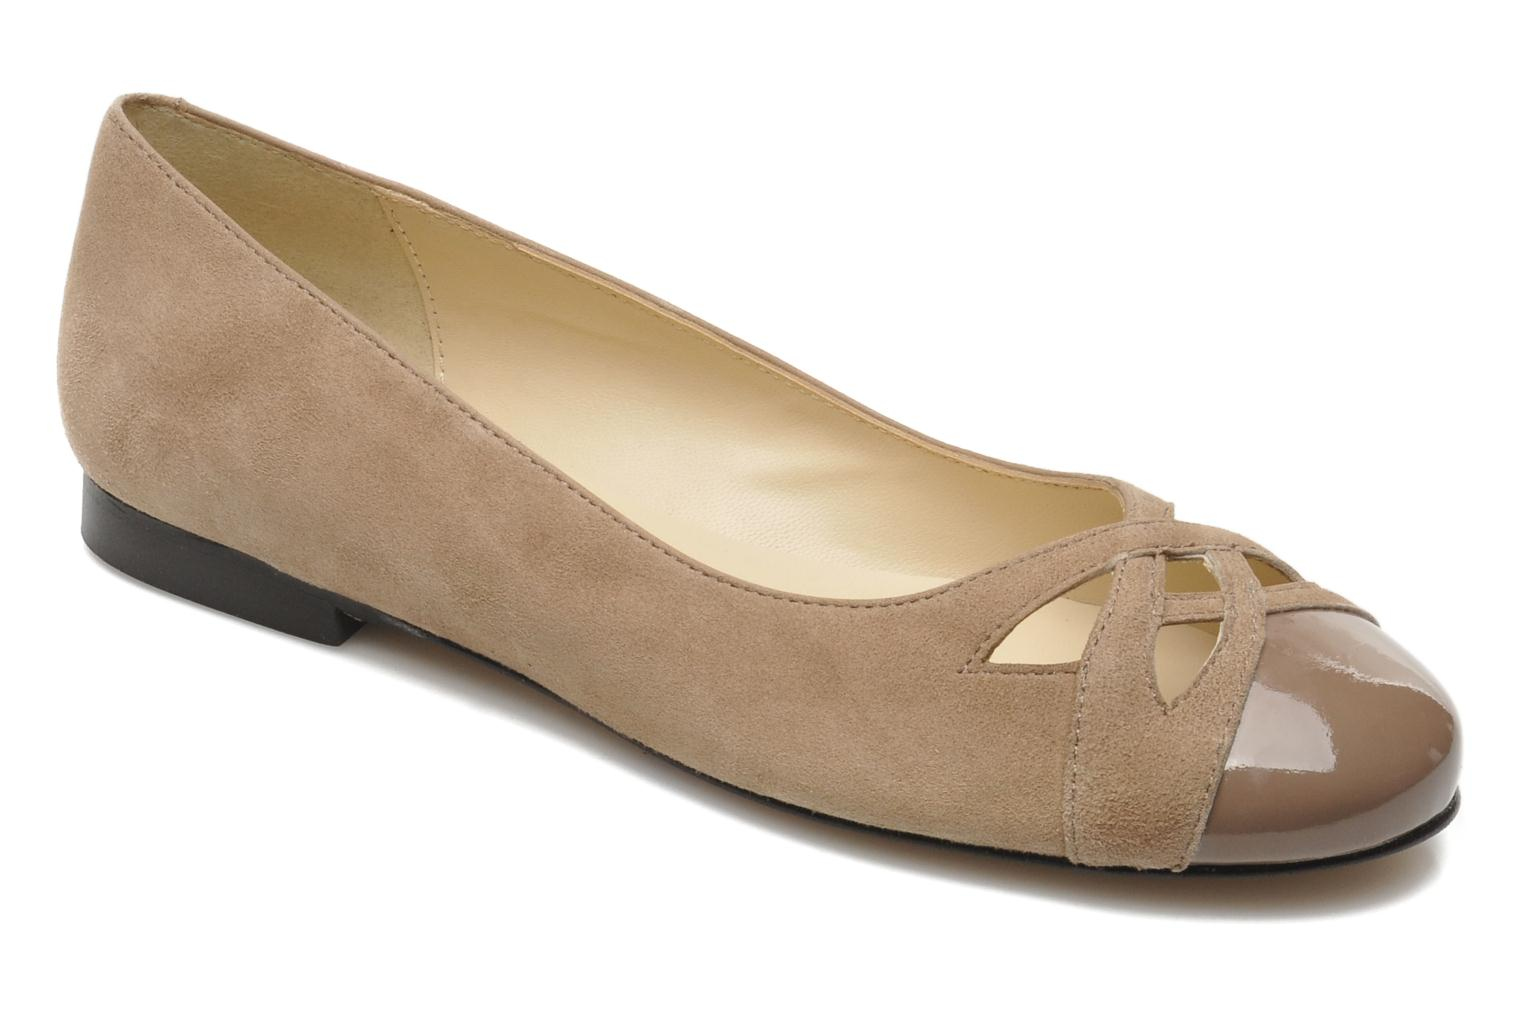 Marques Chaussure femme Georgia Rose femme Savat Ante Taupe II/charol Canela